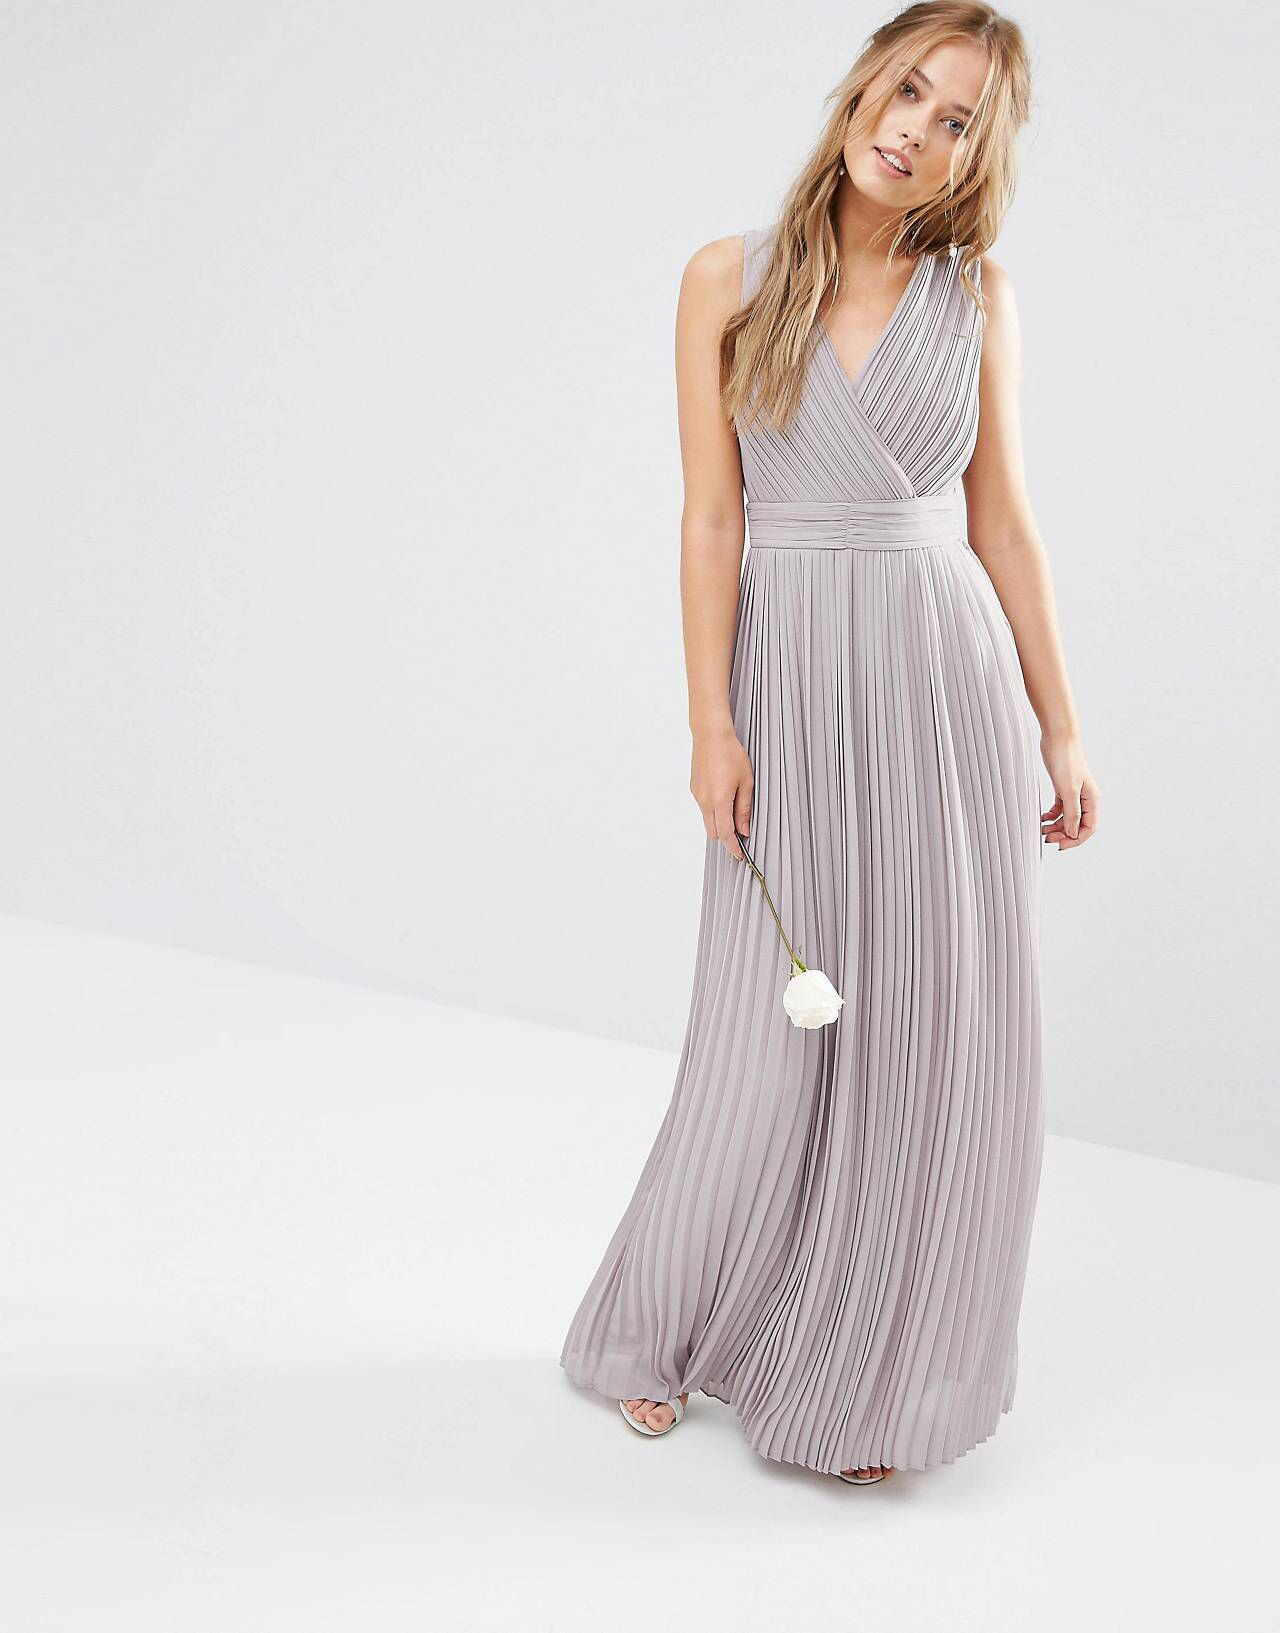 Asos wedding guest dresses with sleeves  LOVE this from ASOS  ราตรยาว  Pinterest  Maids and Wedding